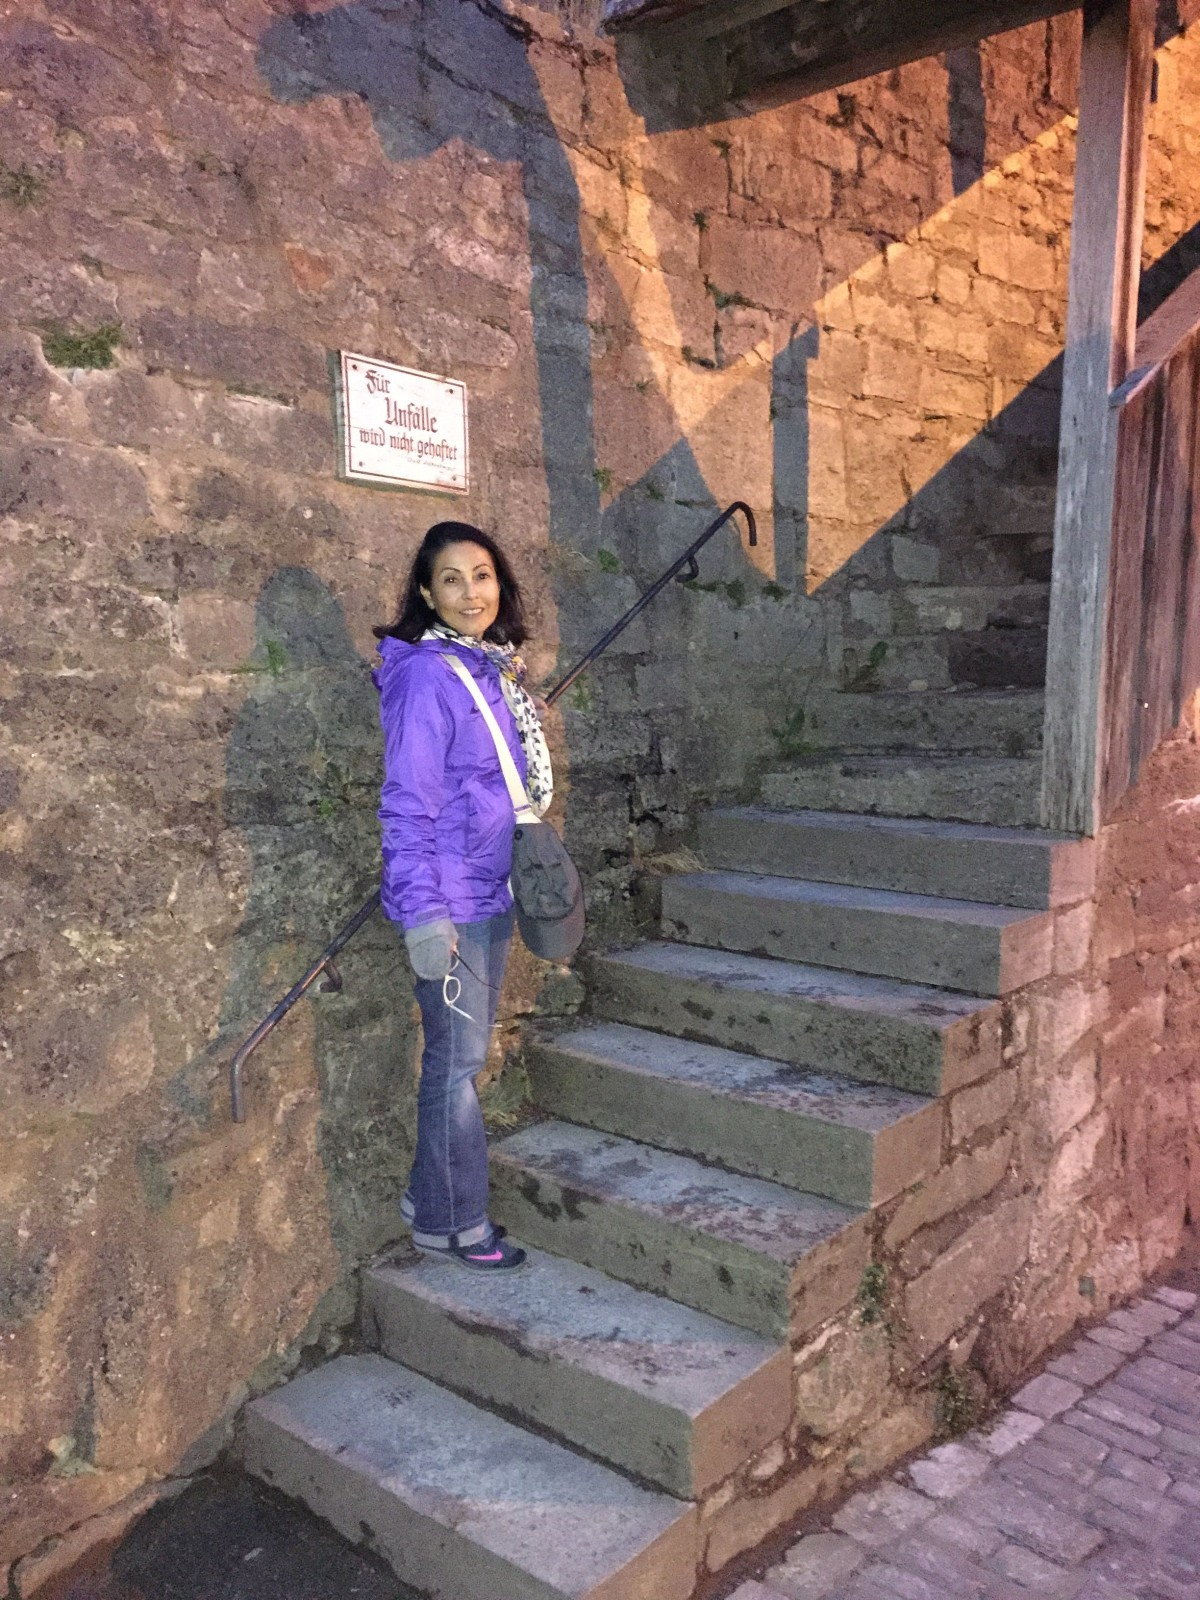 Veronica on the Stairwell to the medieval wall that surrounds Rothenberg